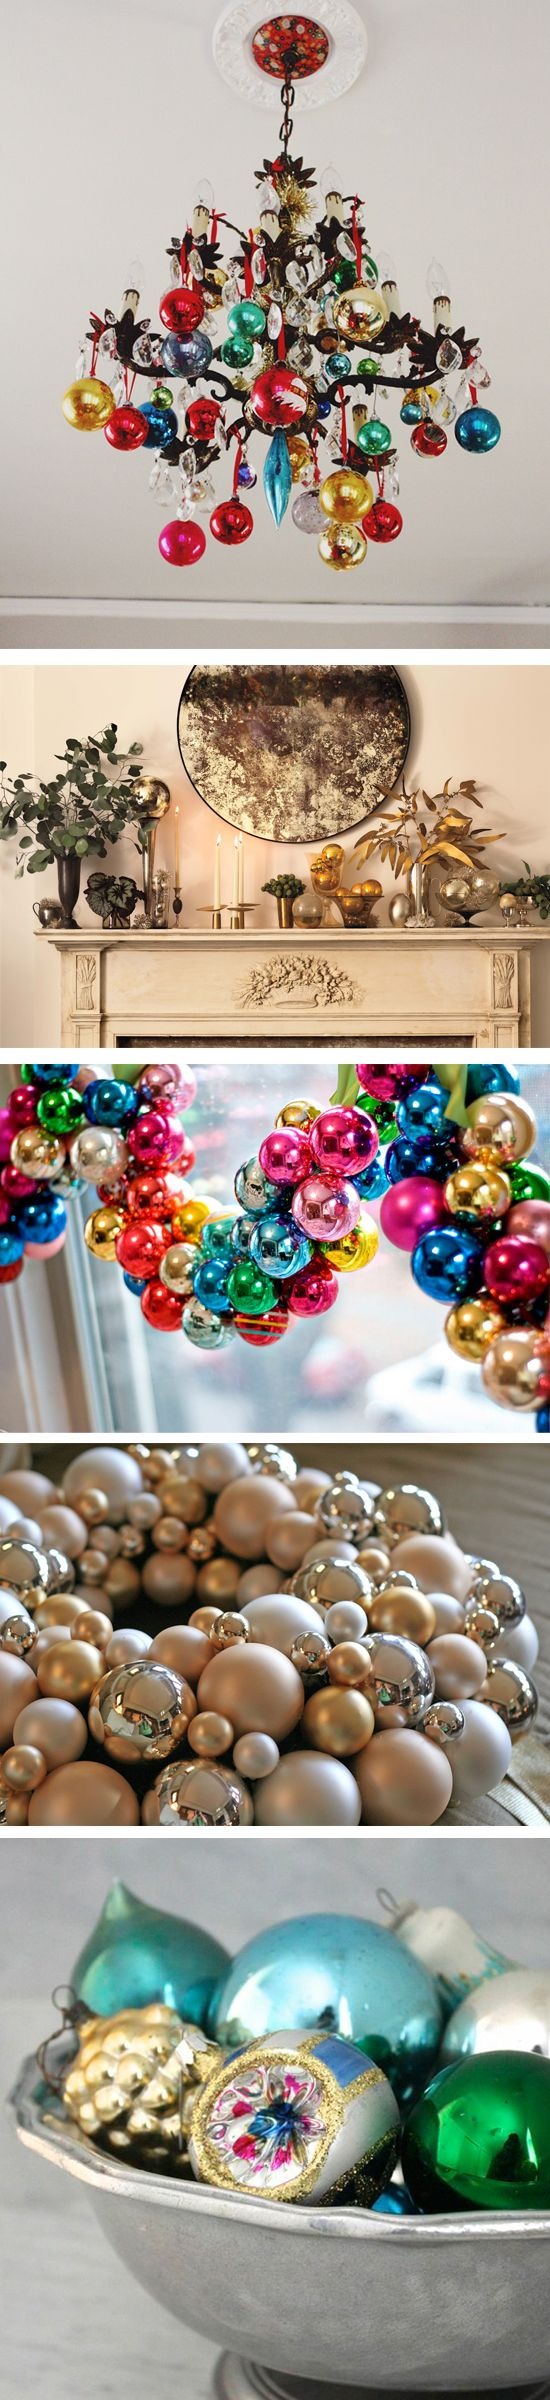 Between the nostalgic favorites and the sparkling newbies too tempting to pass up, it's easy to acquire more than a tree can hold. Luckily, we've rounded up some creative styling solutions that will put your extra ornaments to good use!